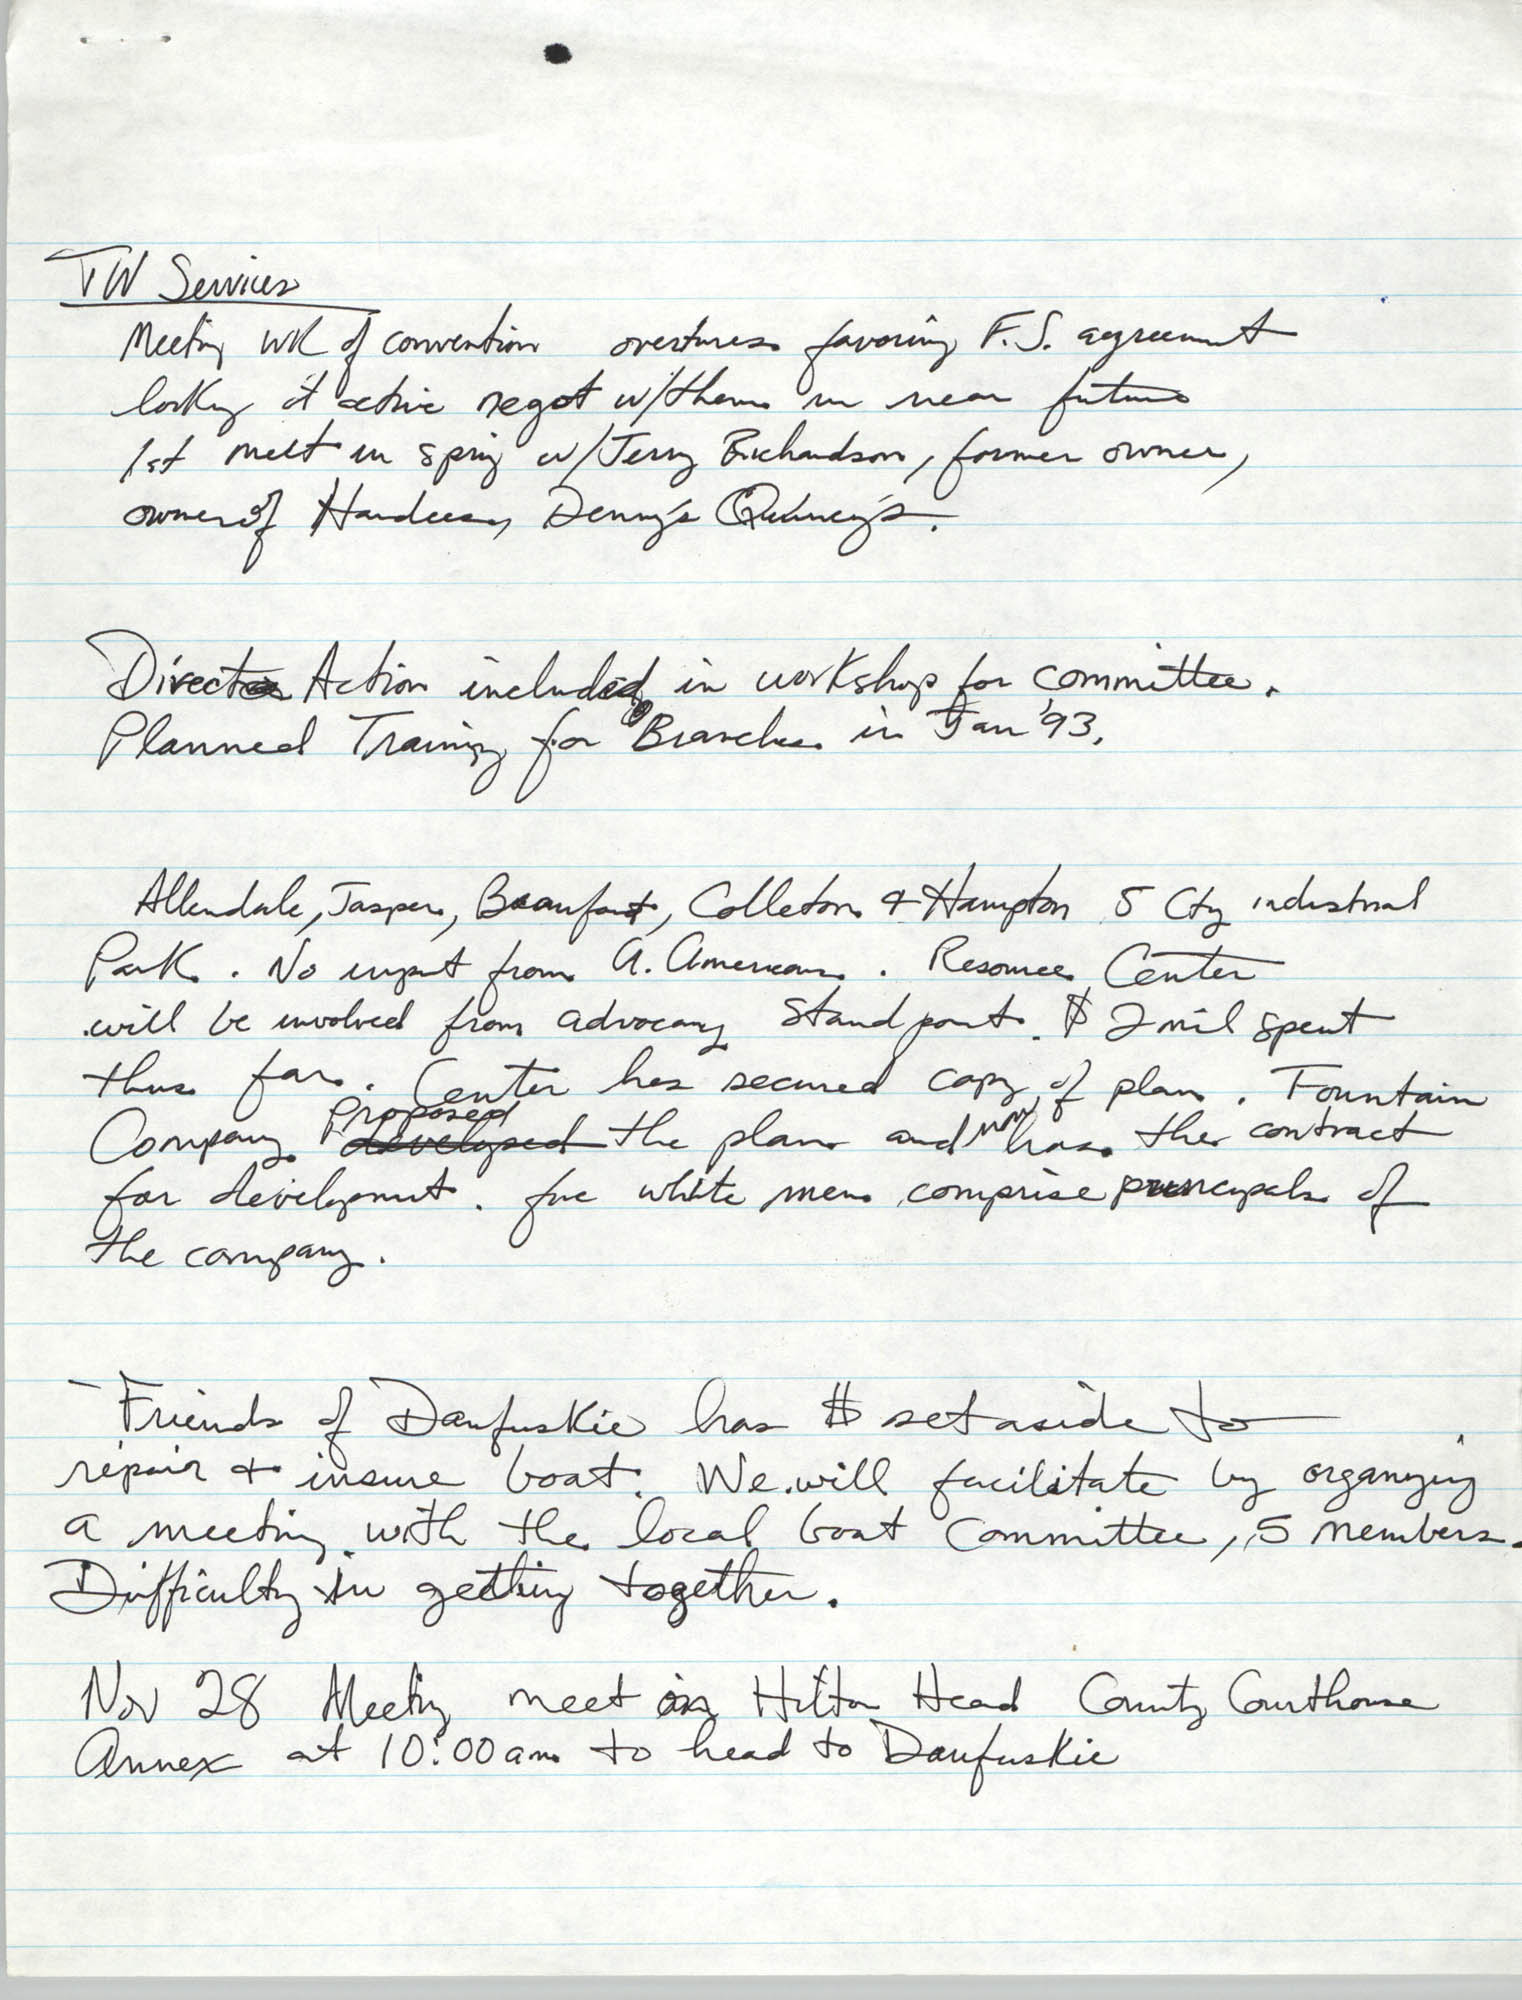 Notes, Charleston Branch of the NAACP, 1993